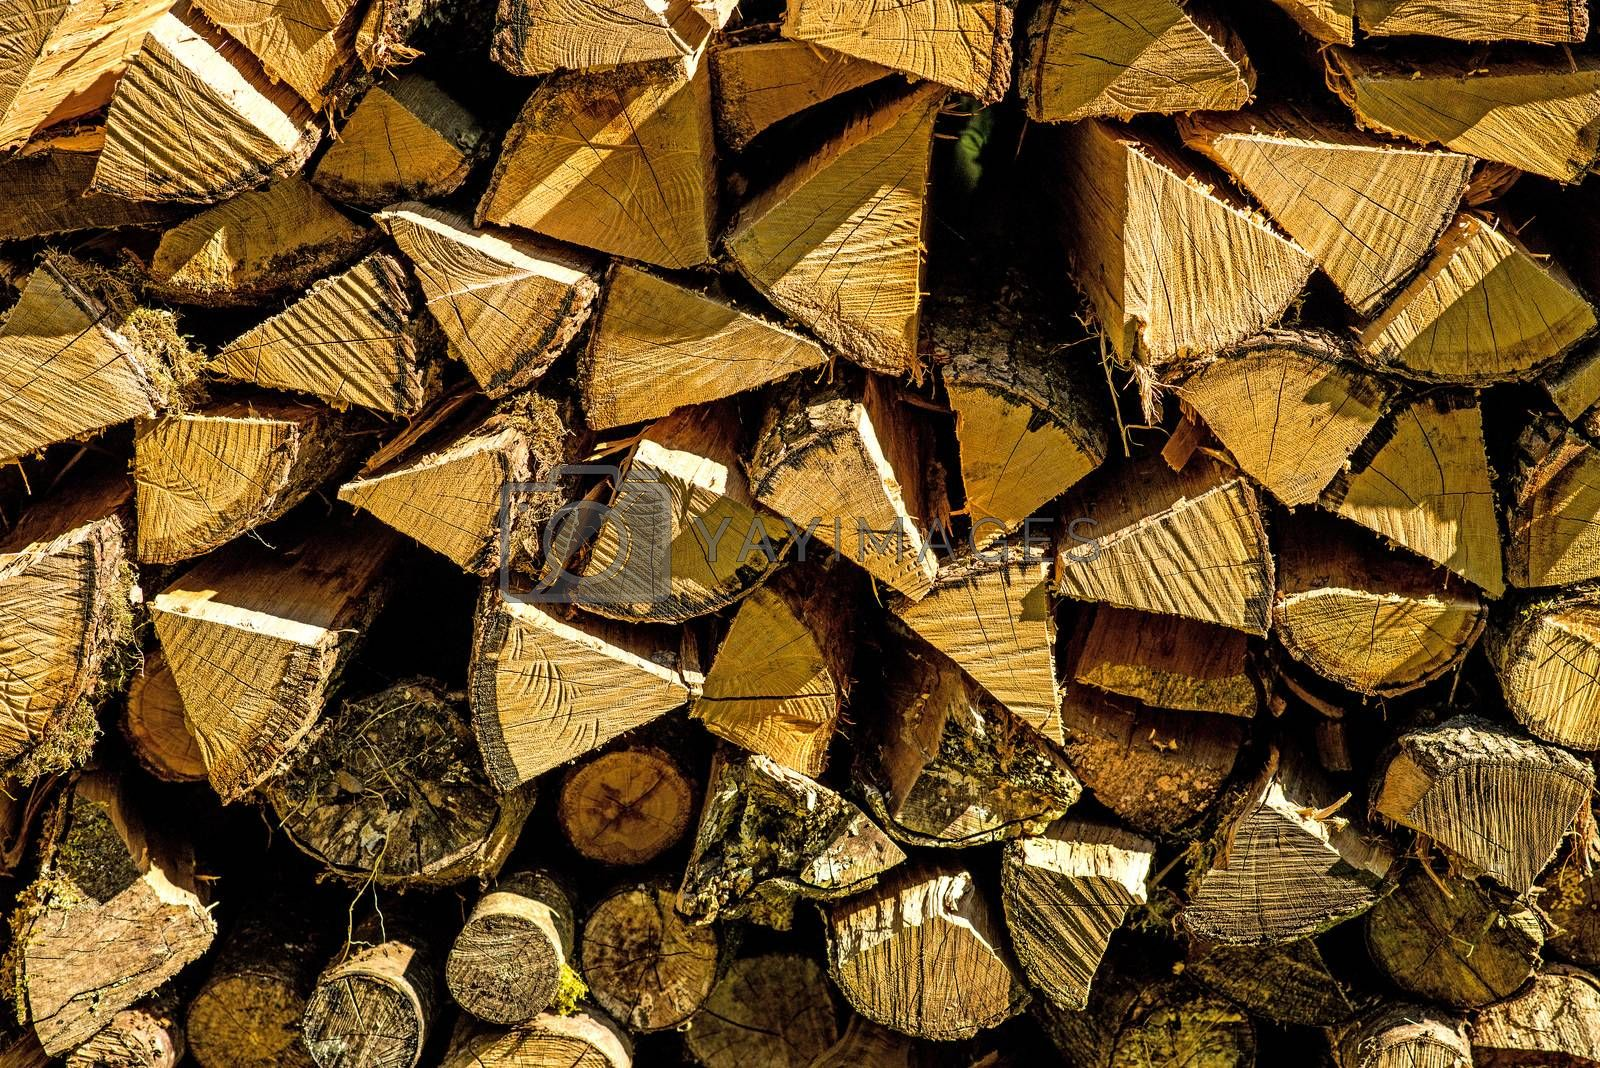 firewood, stack in a forest